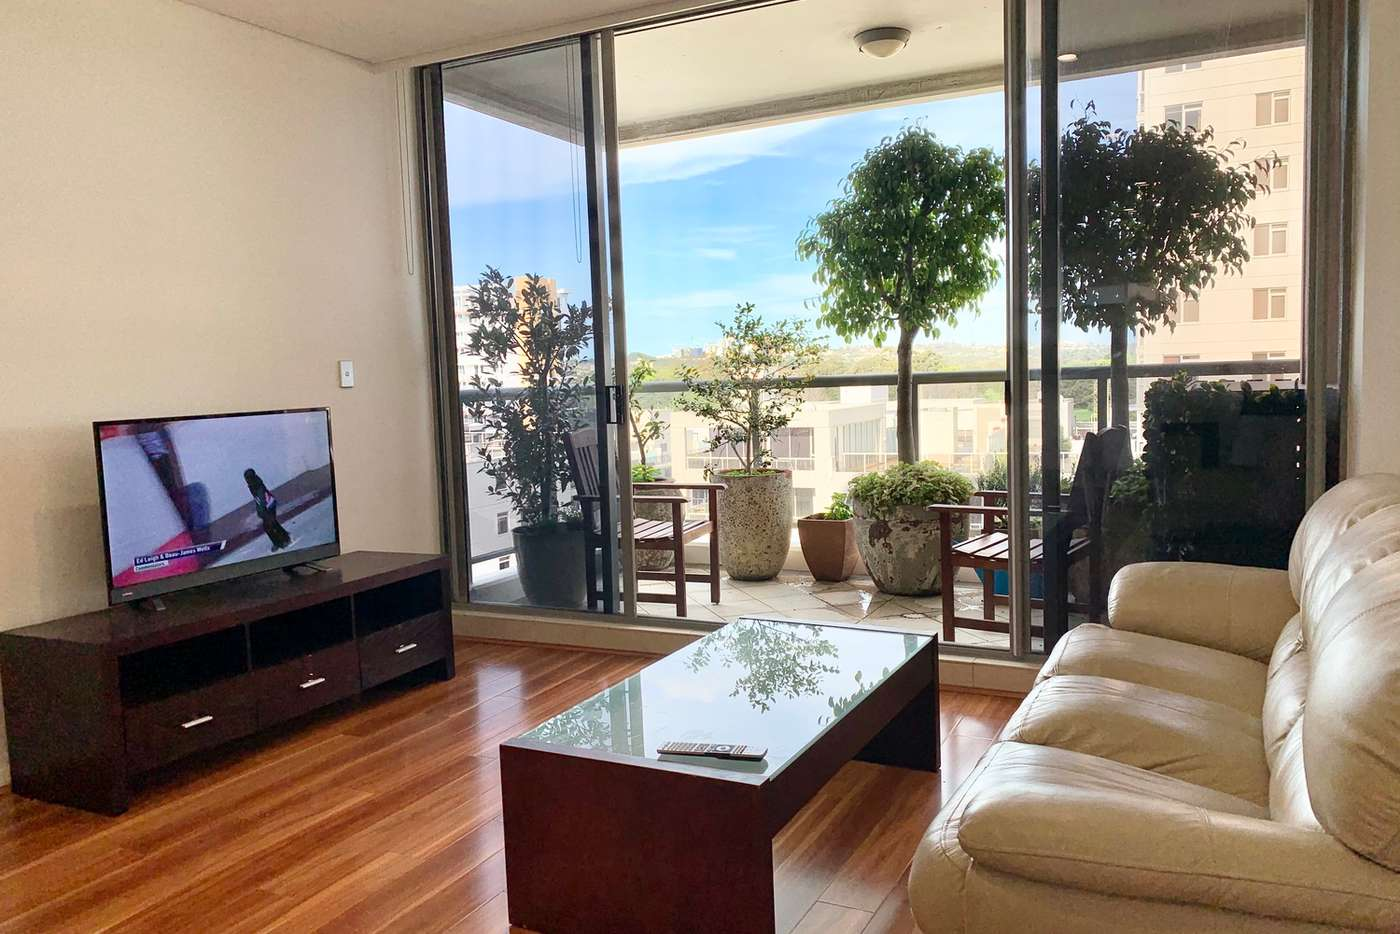 Main view of Homely apartment listing, 1305/6 Lachlan Street, Waterloo NSW 2017